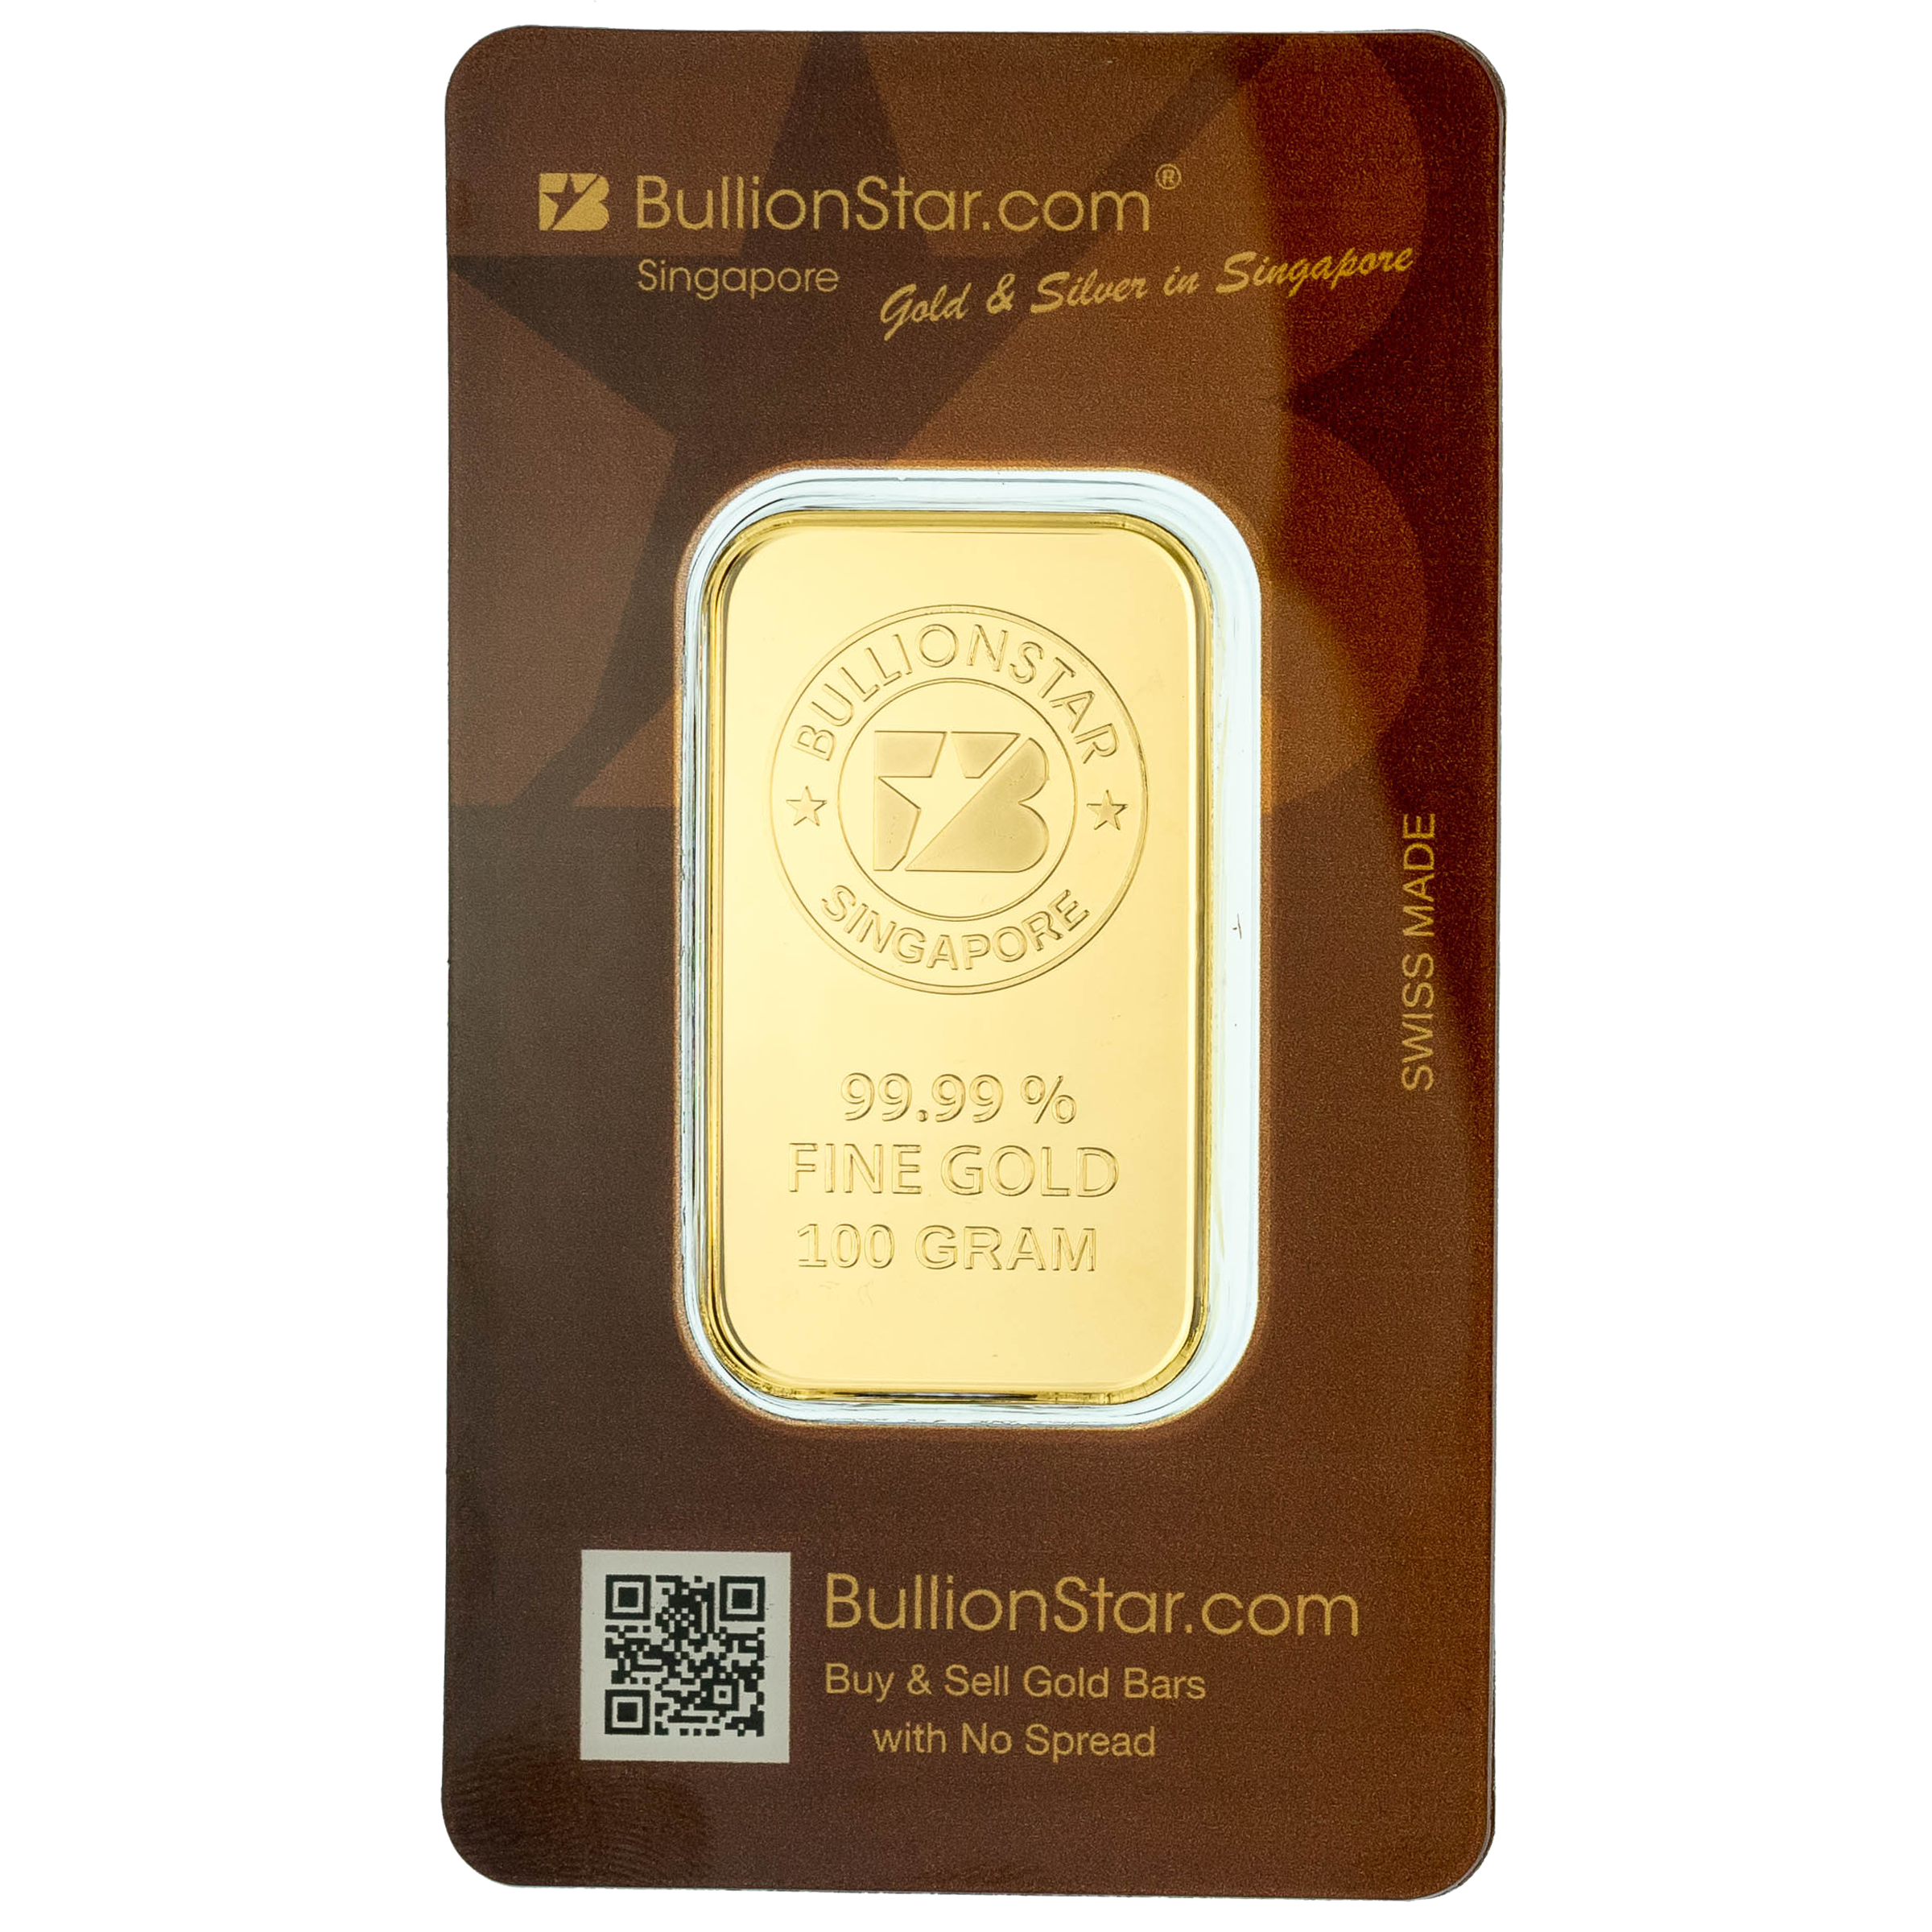 Bullionstar Mint Gold Bars With No Spread 100 G